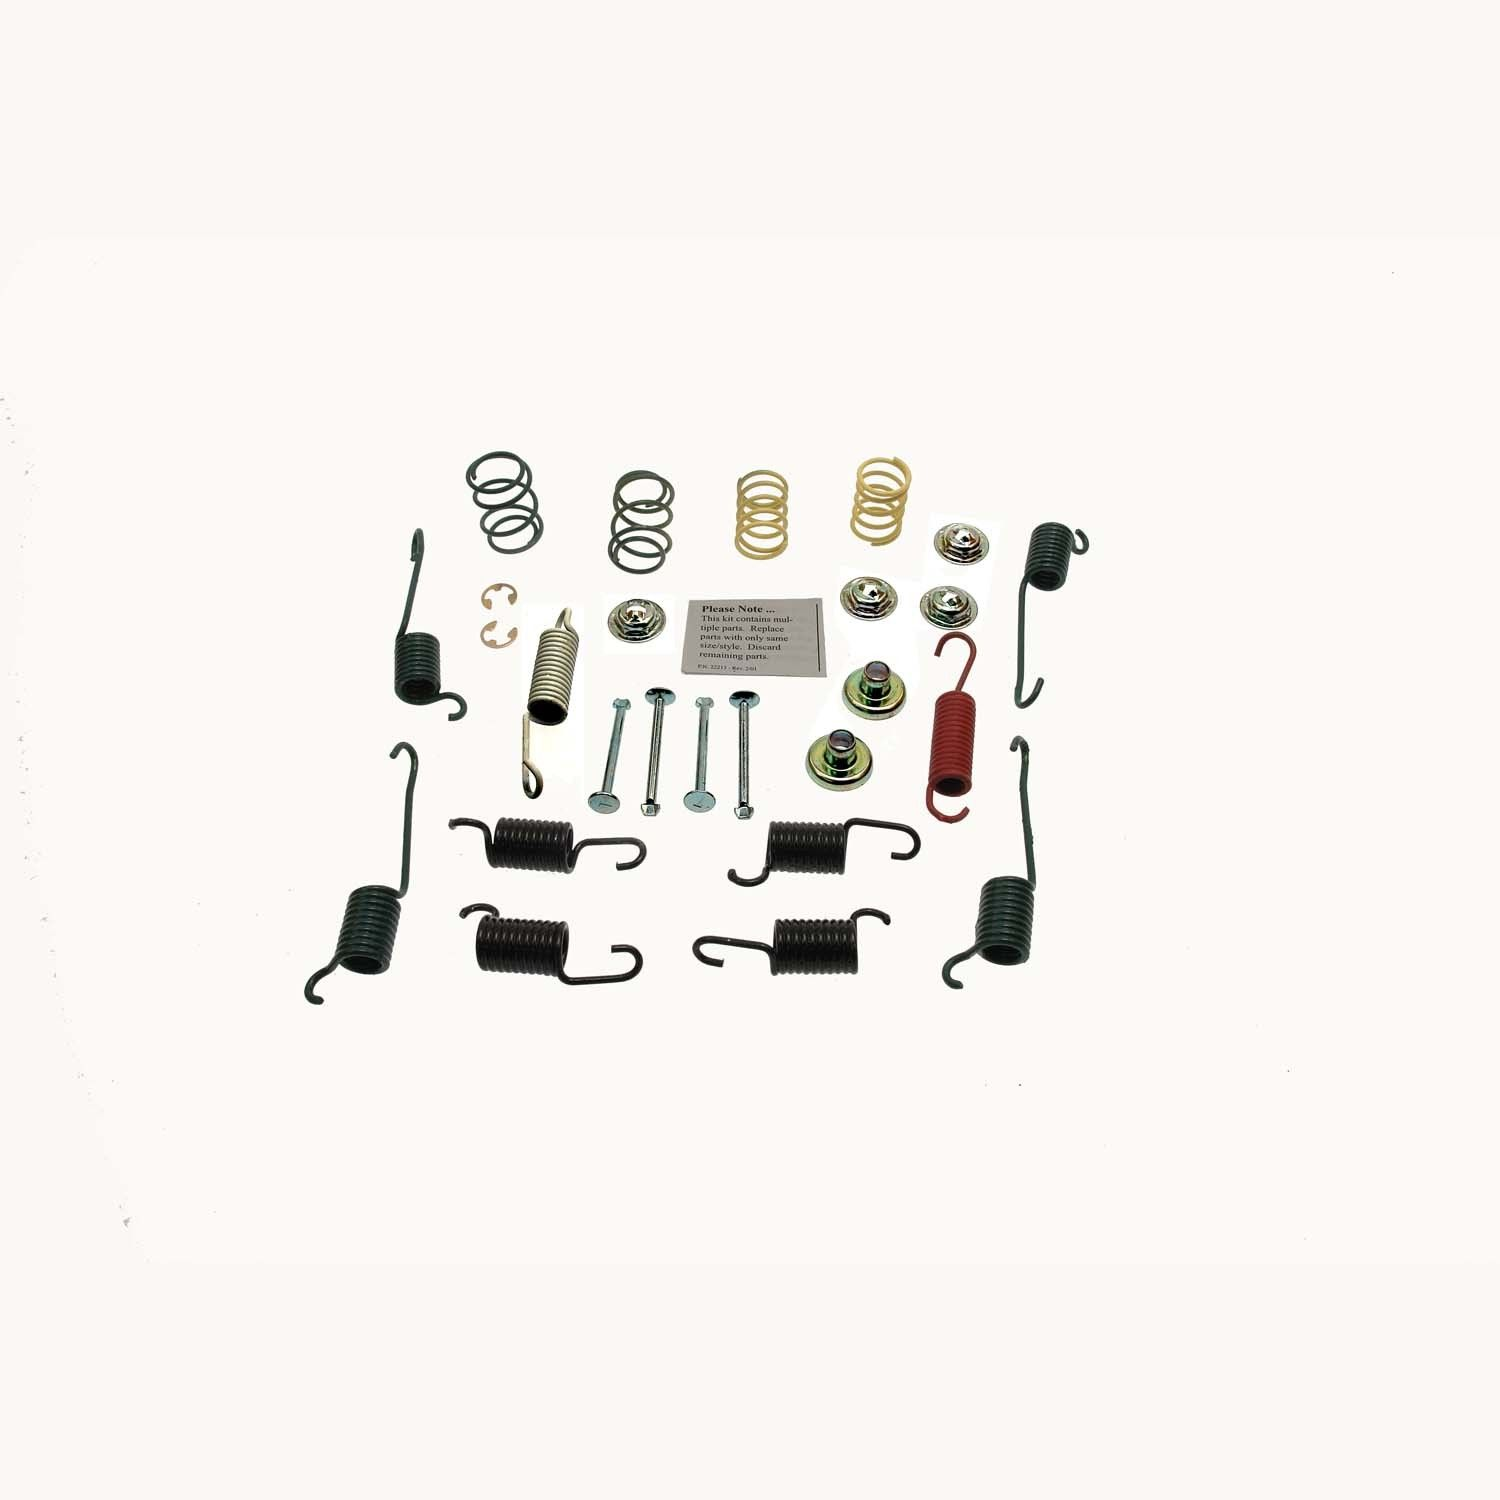 Pontiac Grand Am Drum Brake Hardware Kit Replacement Carlson 1998 Rear H7281 200 X 45mm 719